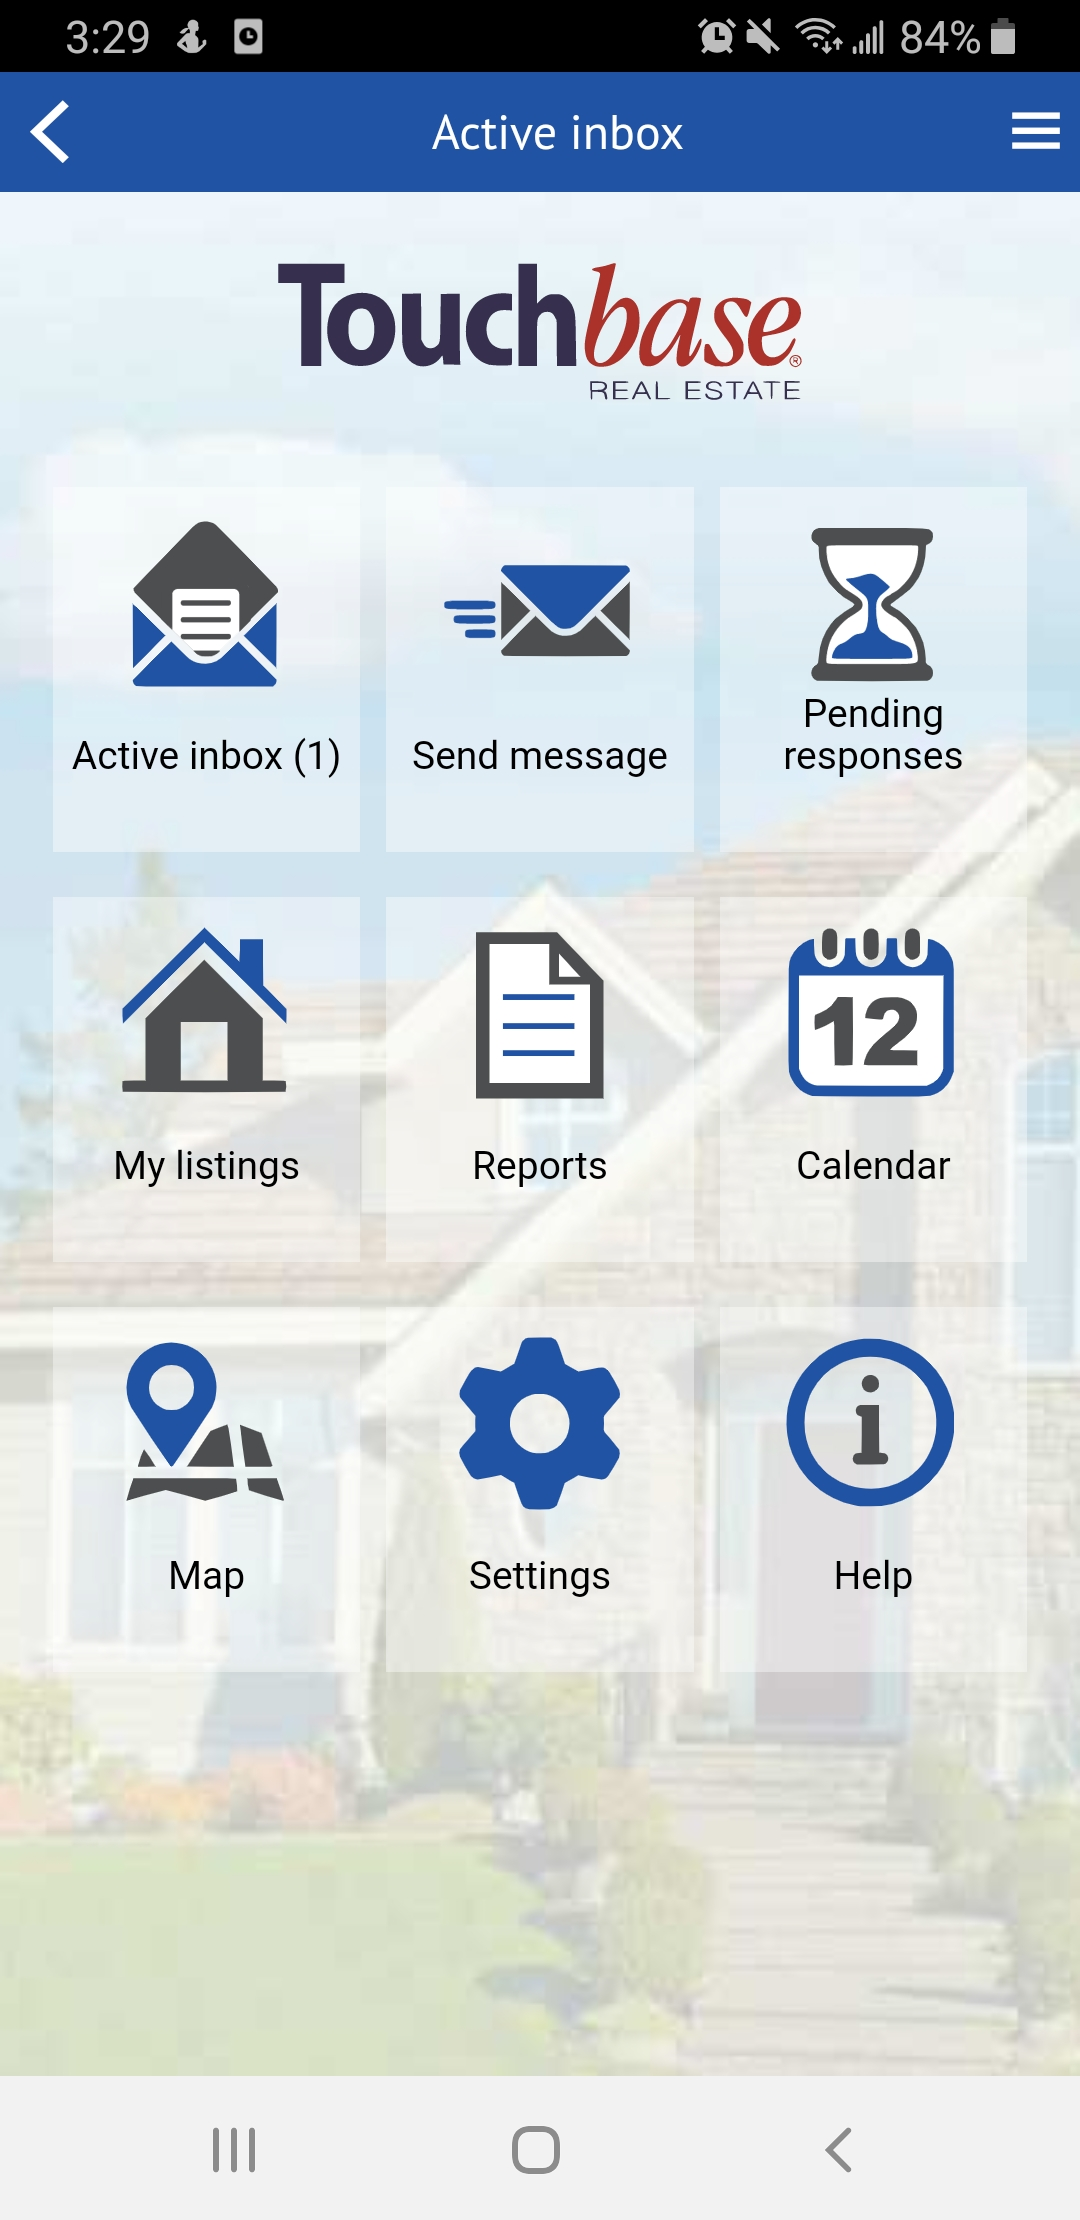 Touchbase real estate mobile app